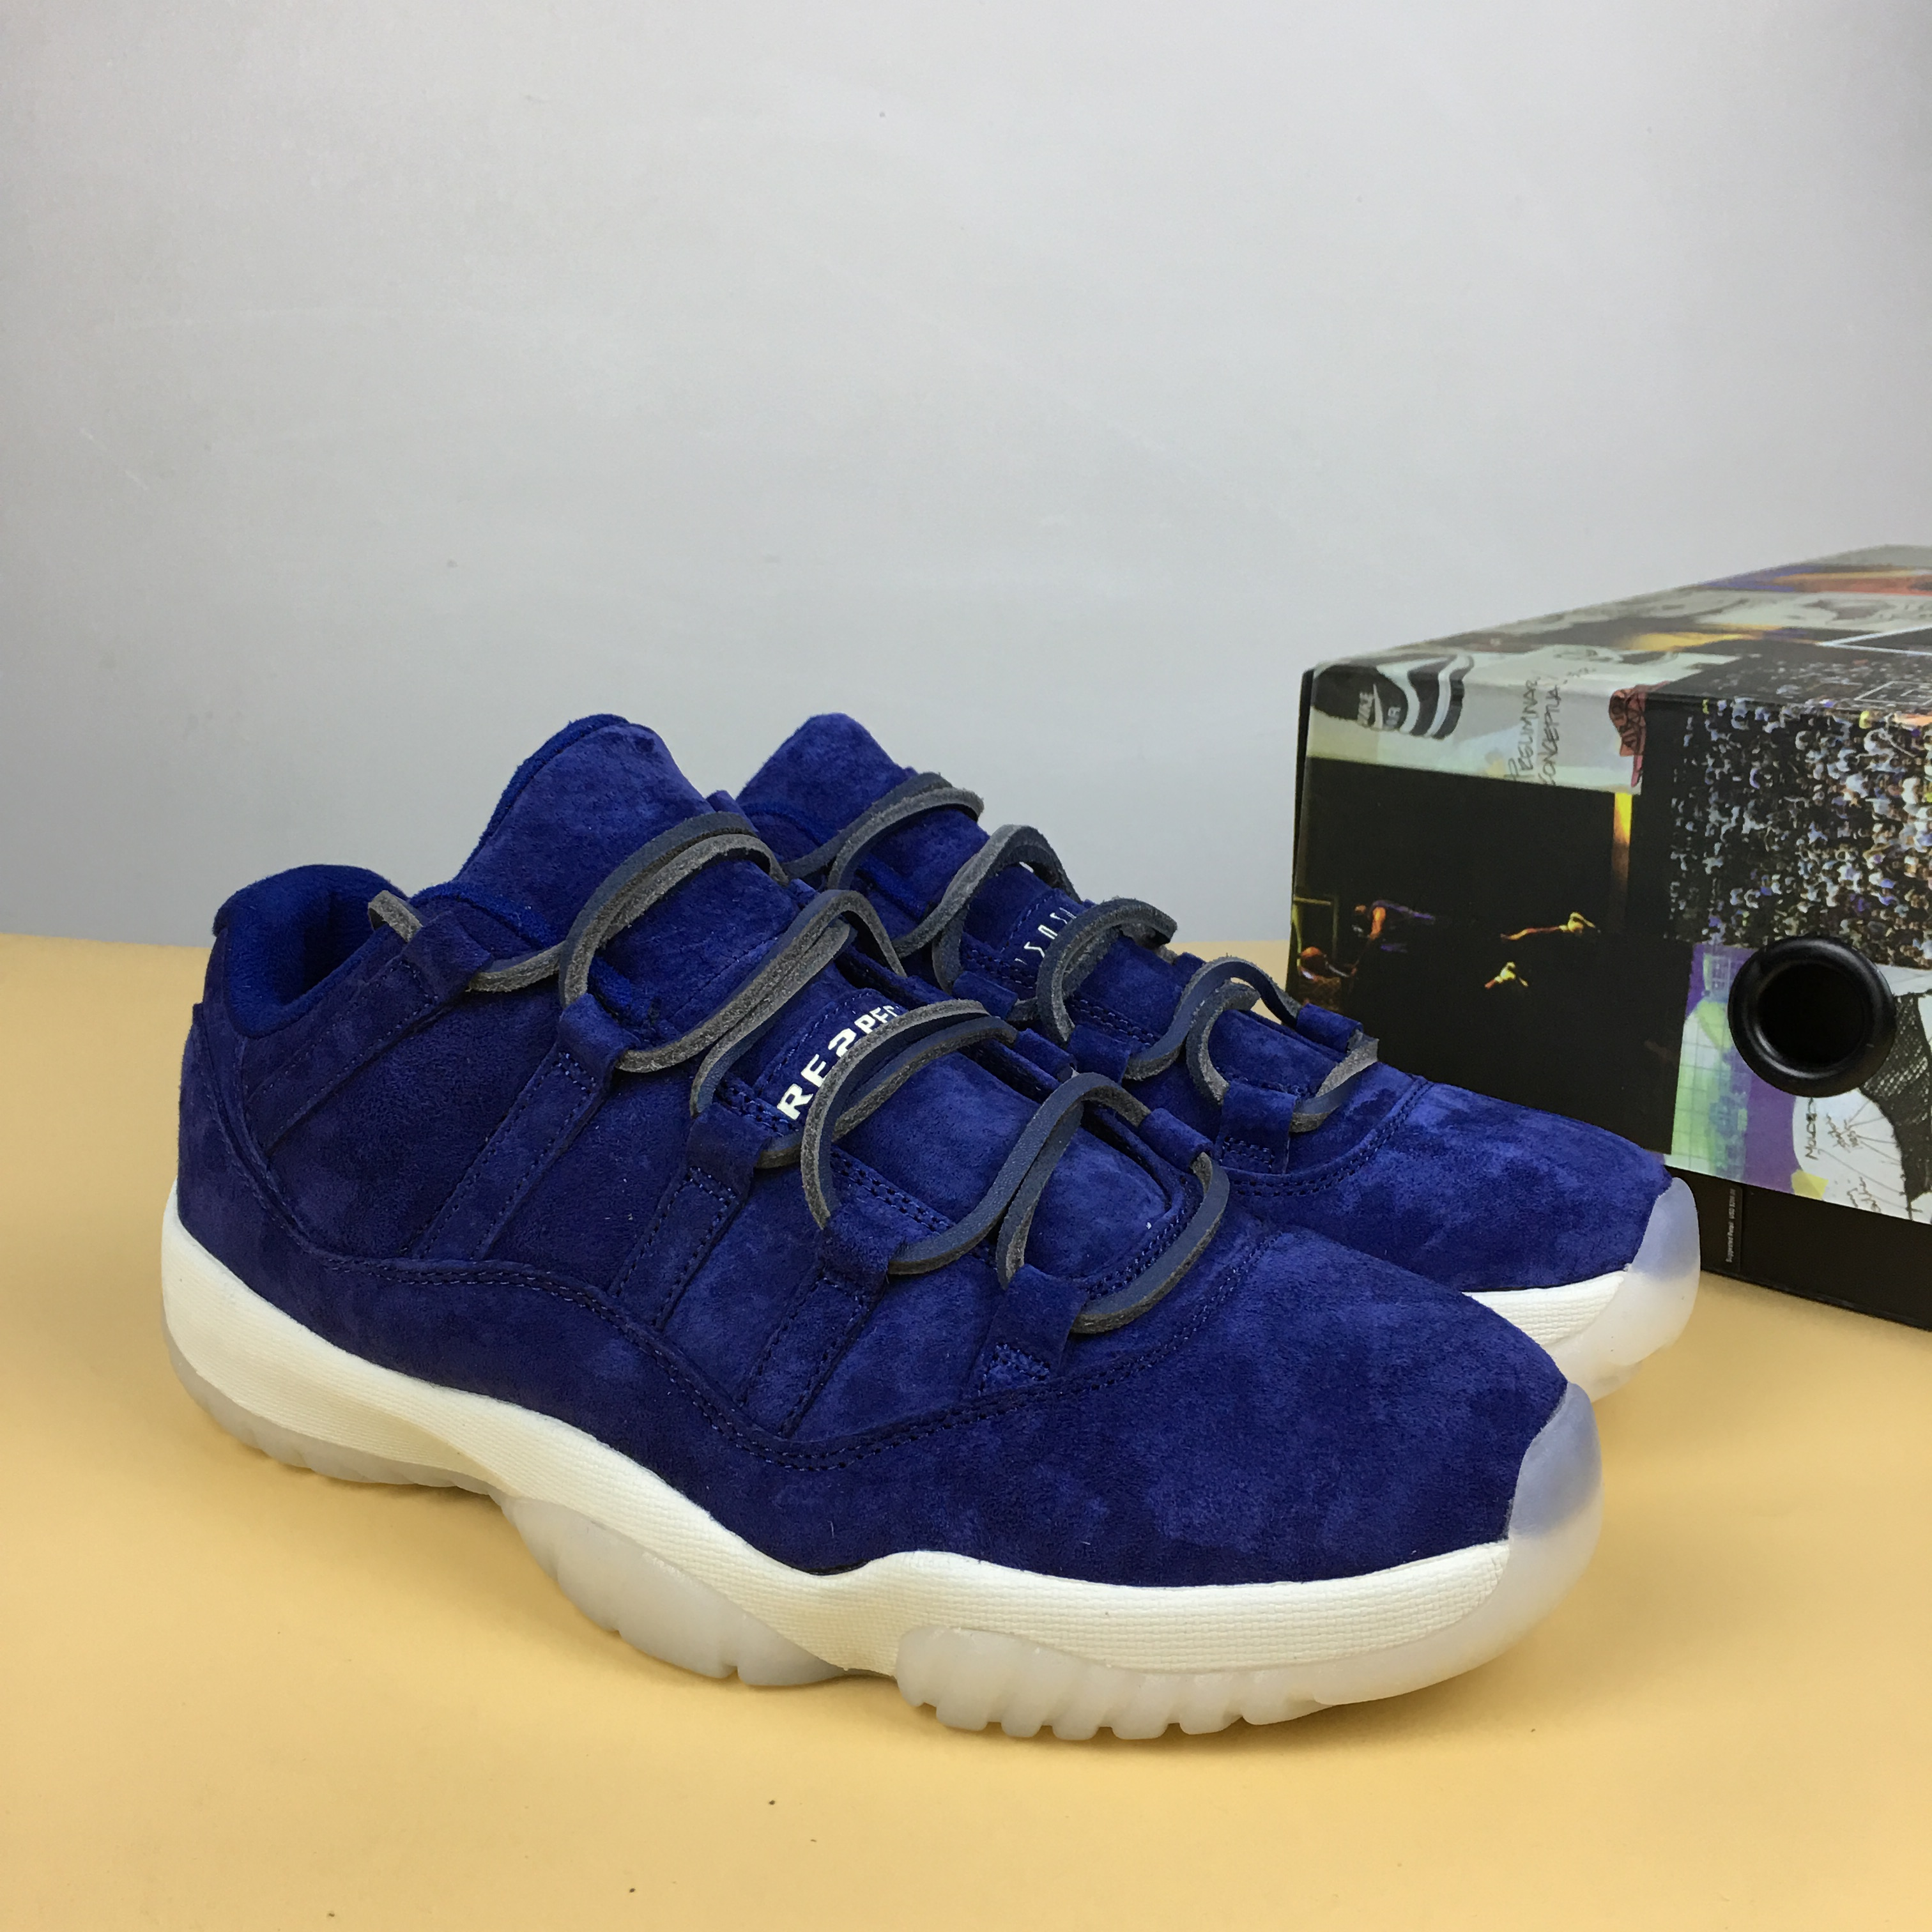 Air Jordan 11 Low RE2PECT Sea Blue Shoes